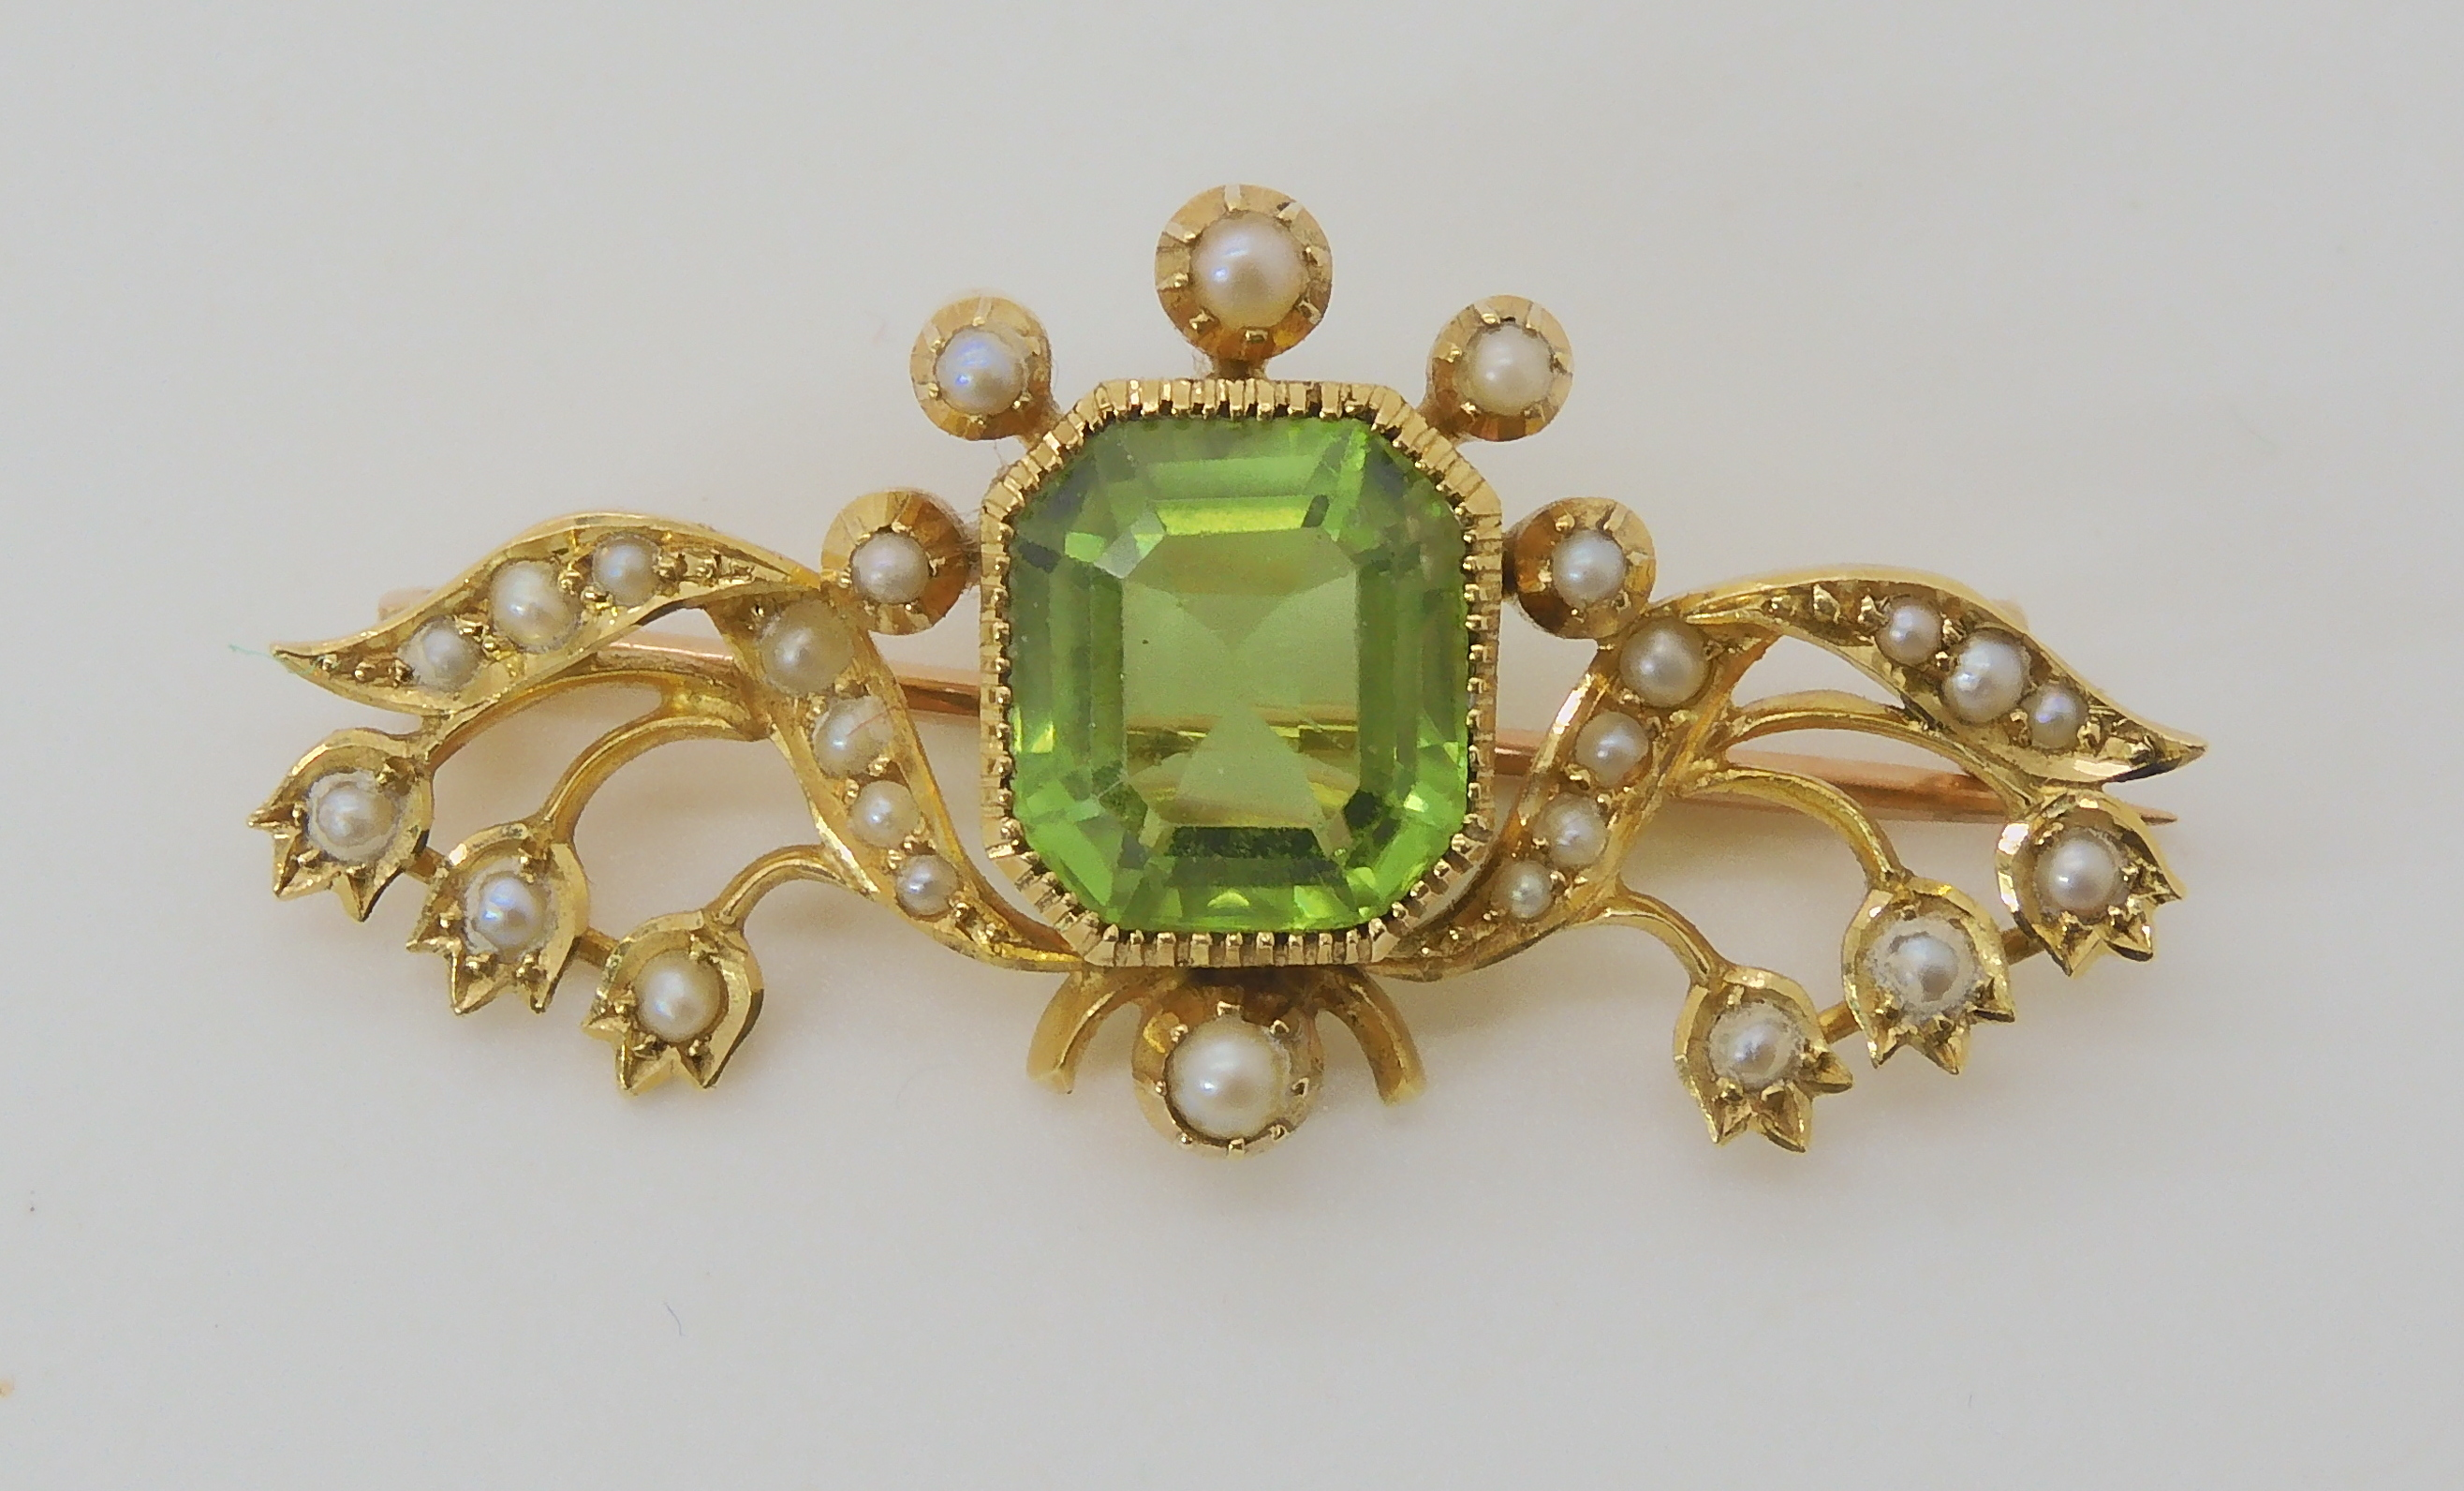 A 15CT GOLD PERIDOT AND PEARL EDWARDIAN BROOCH depicting lily of the valley, the peridot is